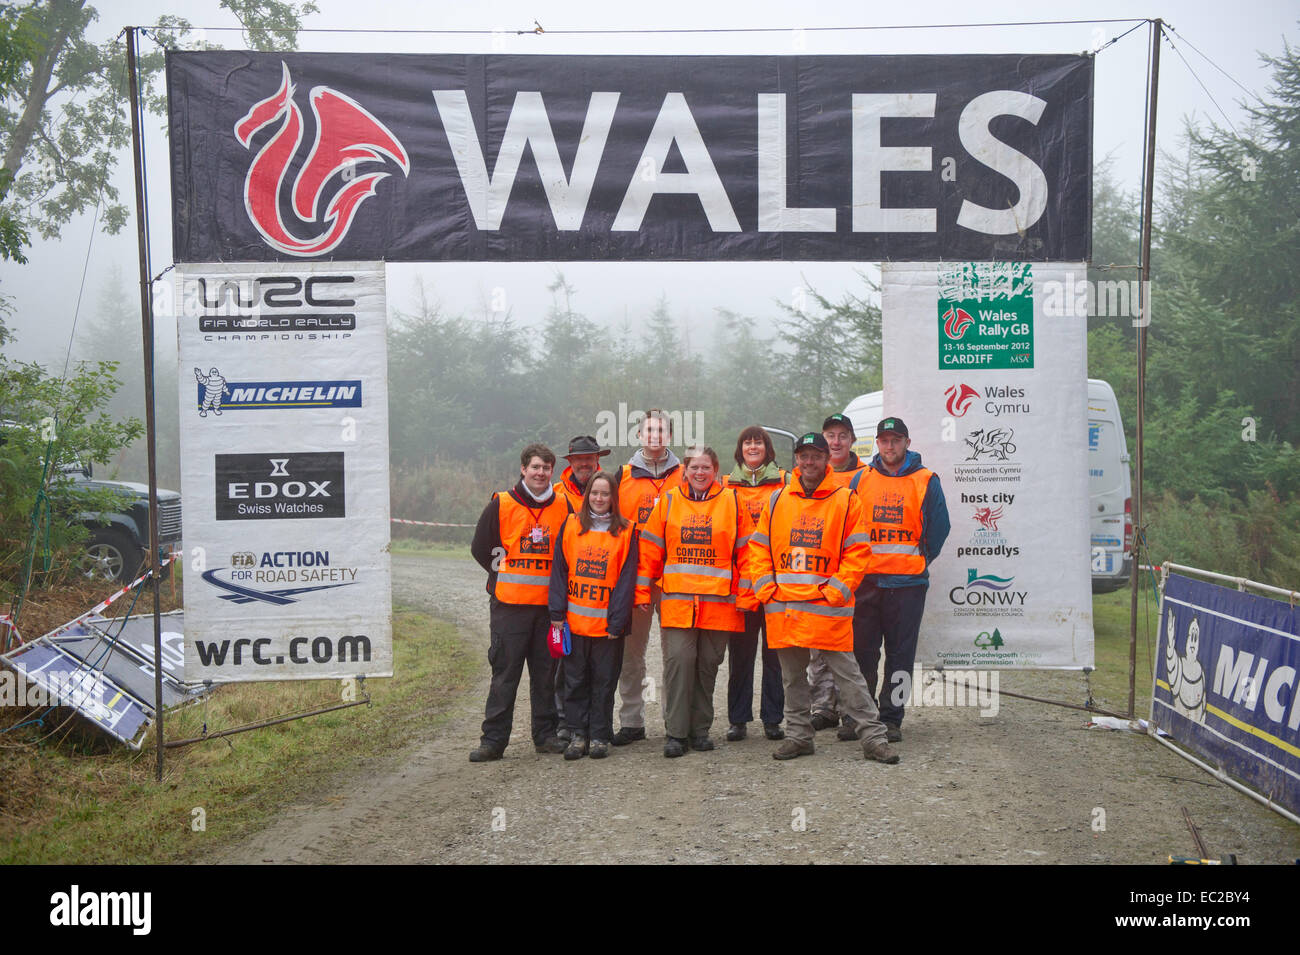 Safety officials Welsh rally GB - Stock Image